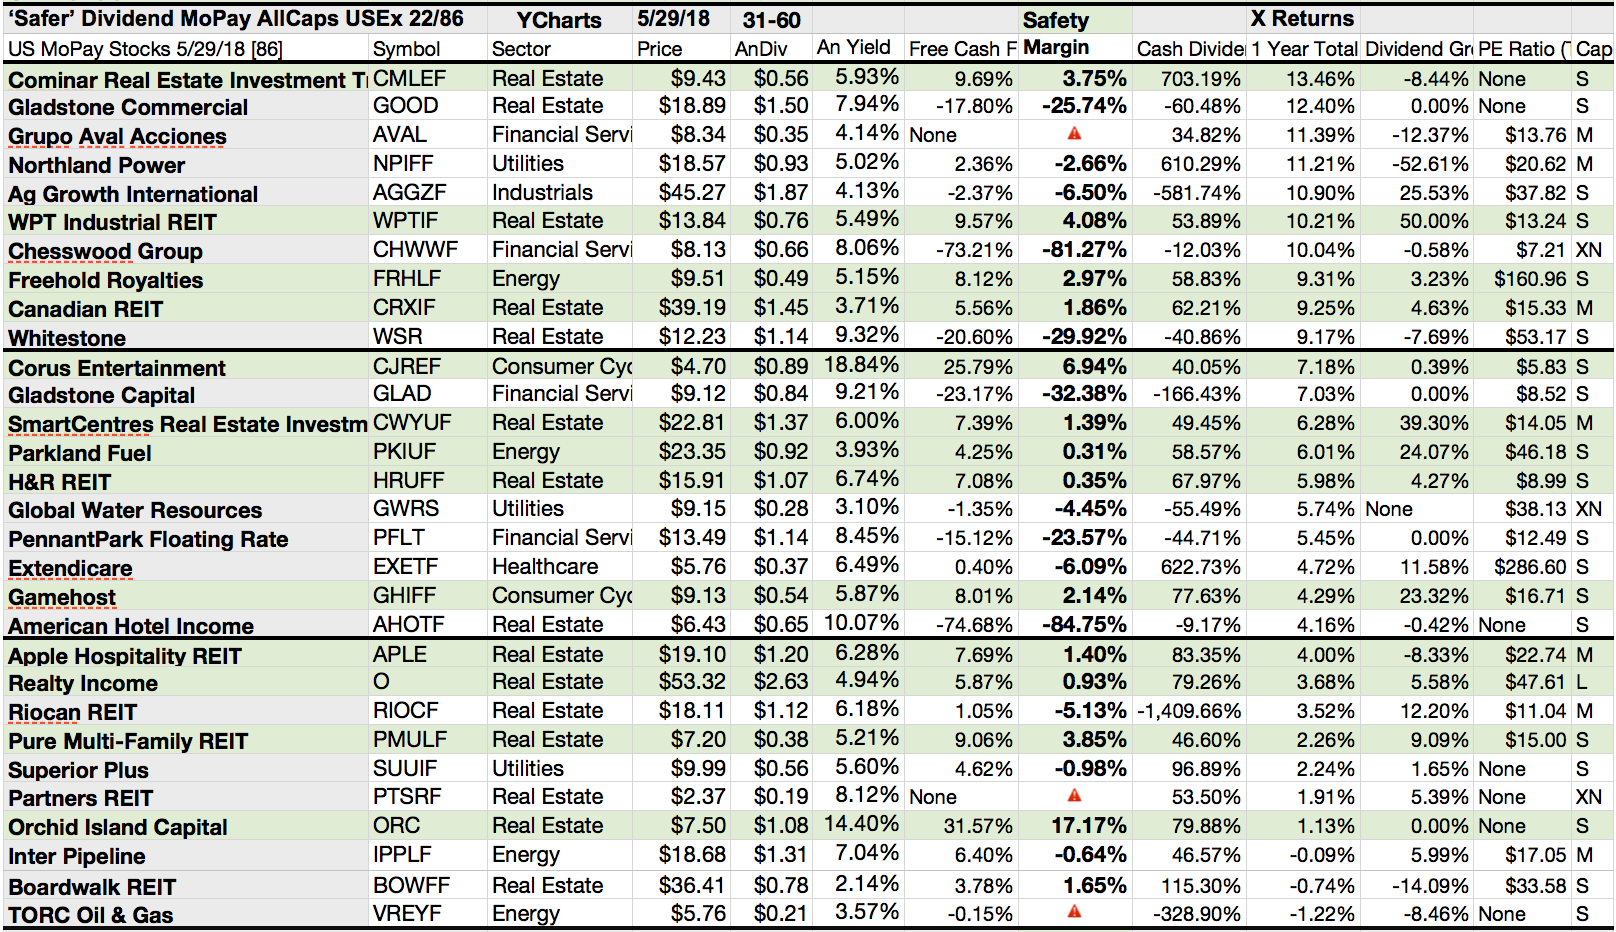 Here Are 22 'Safer' U.S. Monthly Paid Dividend Stocks For June